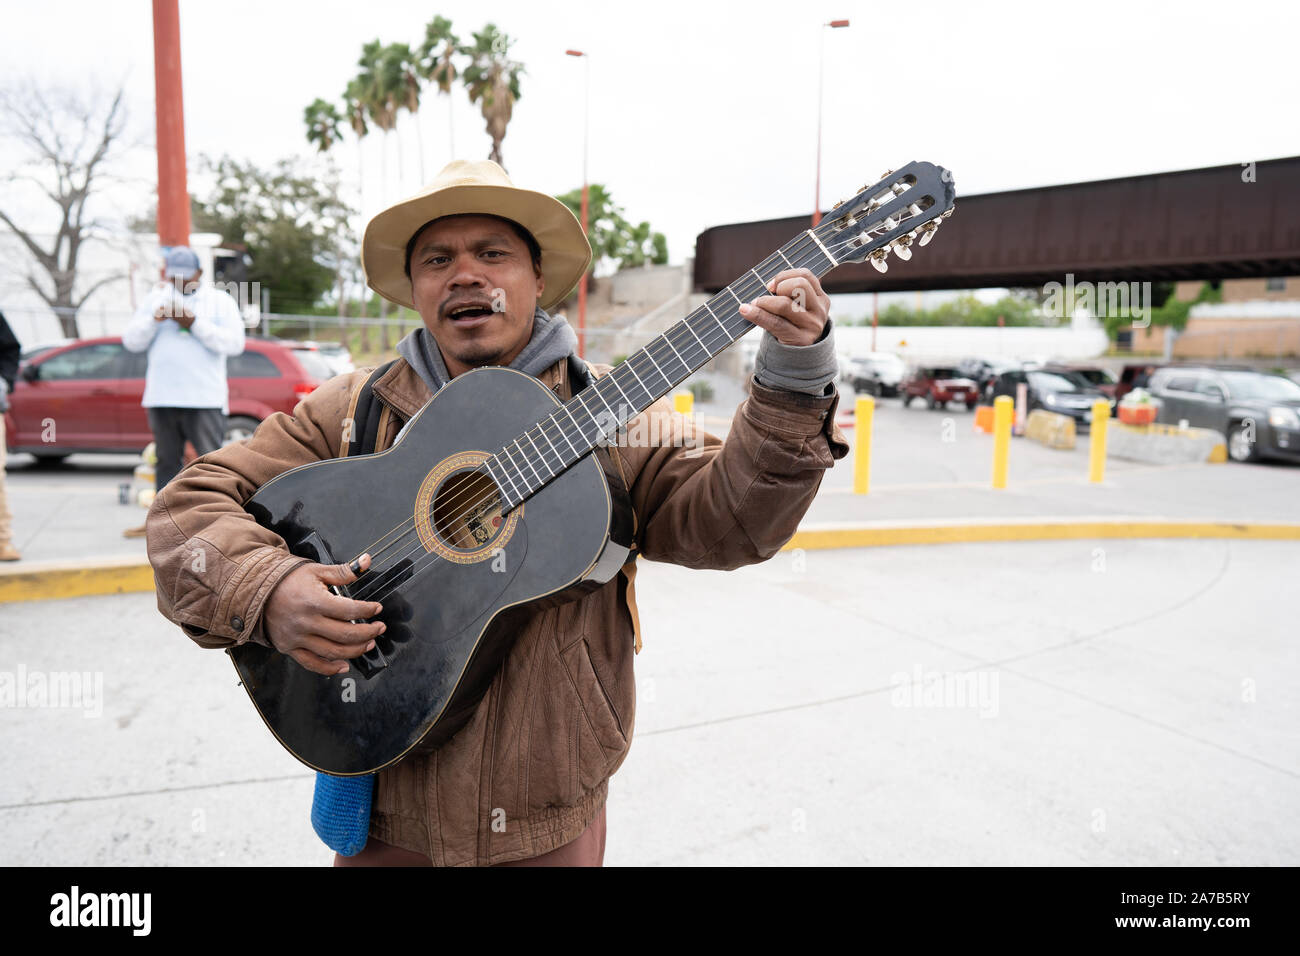 Matamoros, Mexico, 31 October 2019, a migrant from Chiapas plays his guitar in the Mexican border town of Matamoros.  Around 2000 refugees are currently living in tents next to the International Bridge that connects the Mexican city of Matamoros with the US city of Brownsville.    Credit: Lexie Harrison-Cripps/Alamy Live News Stock Photo